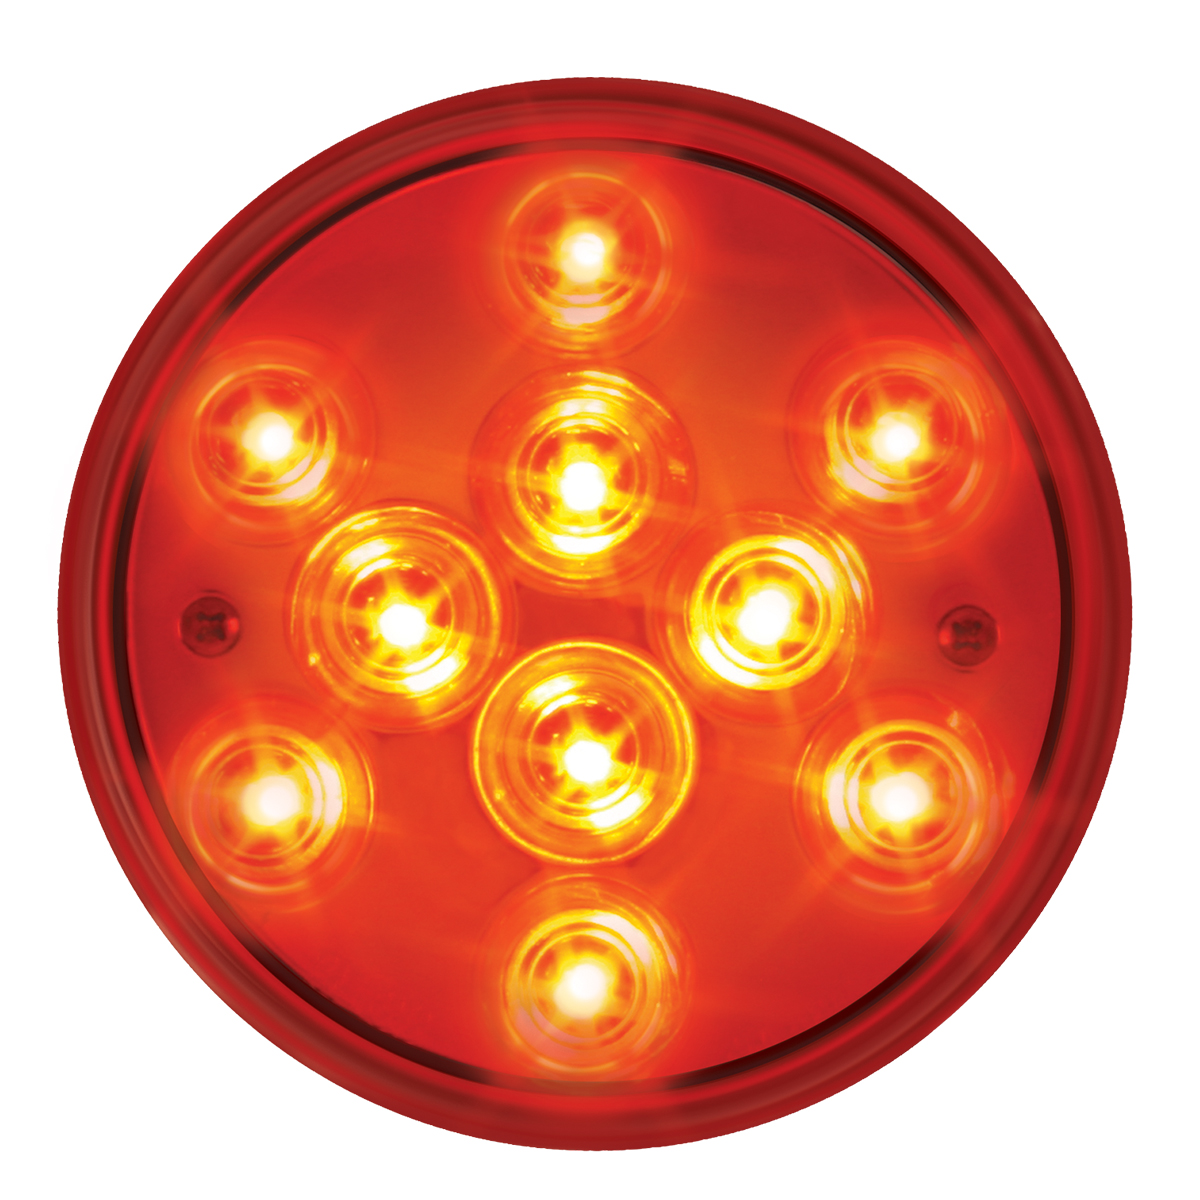 "76842 4"" Mega 10 Plus LED Light in Red/Red"